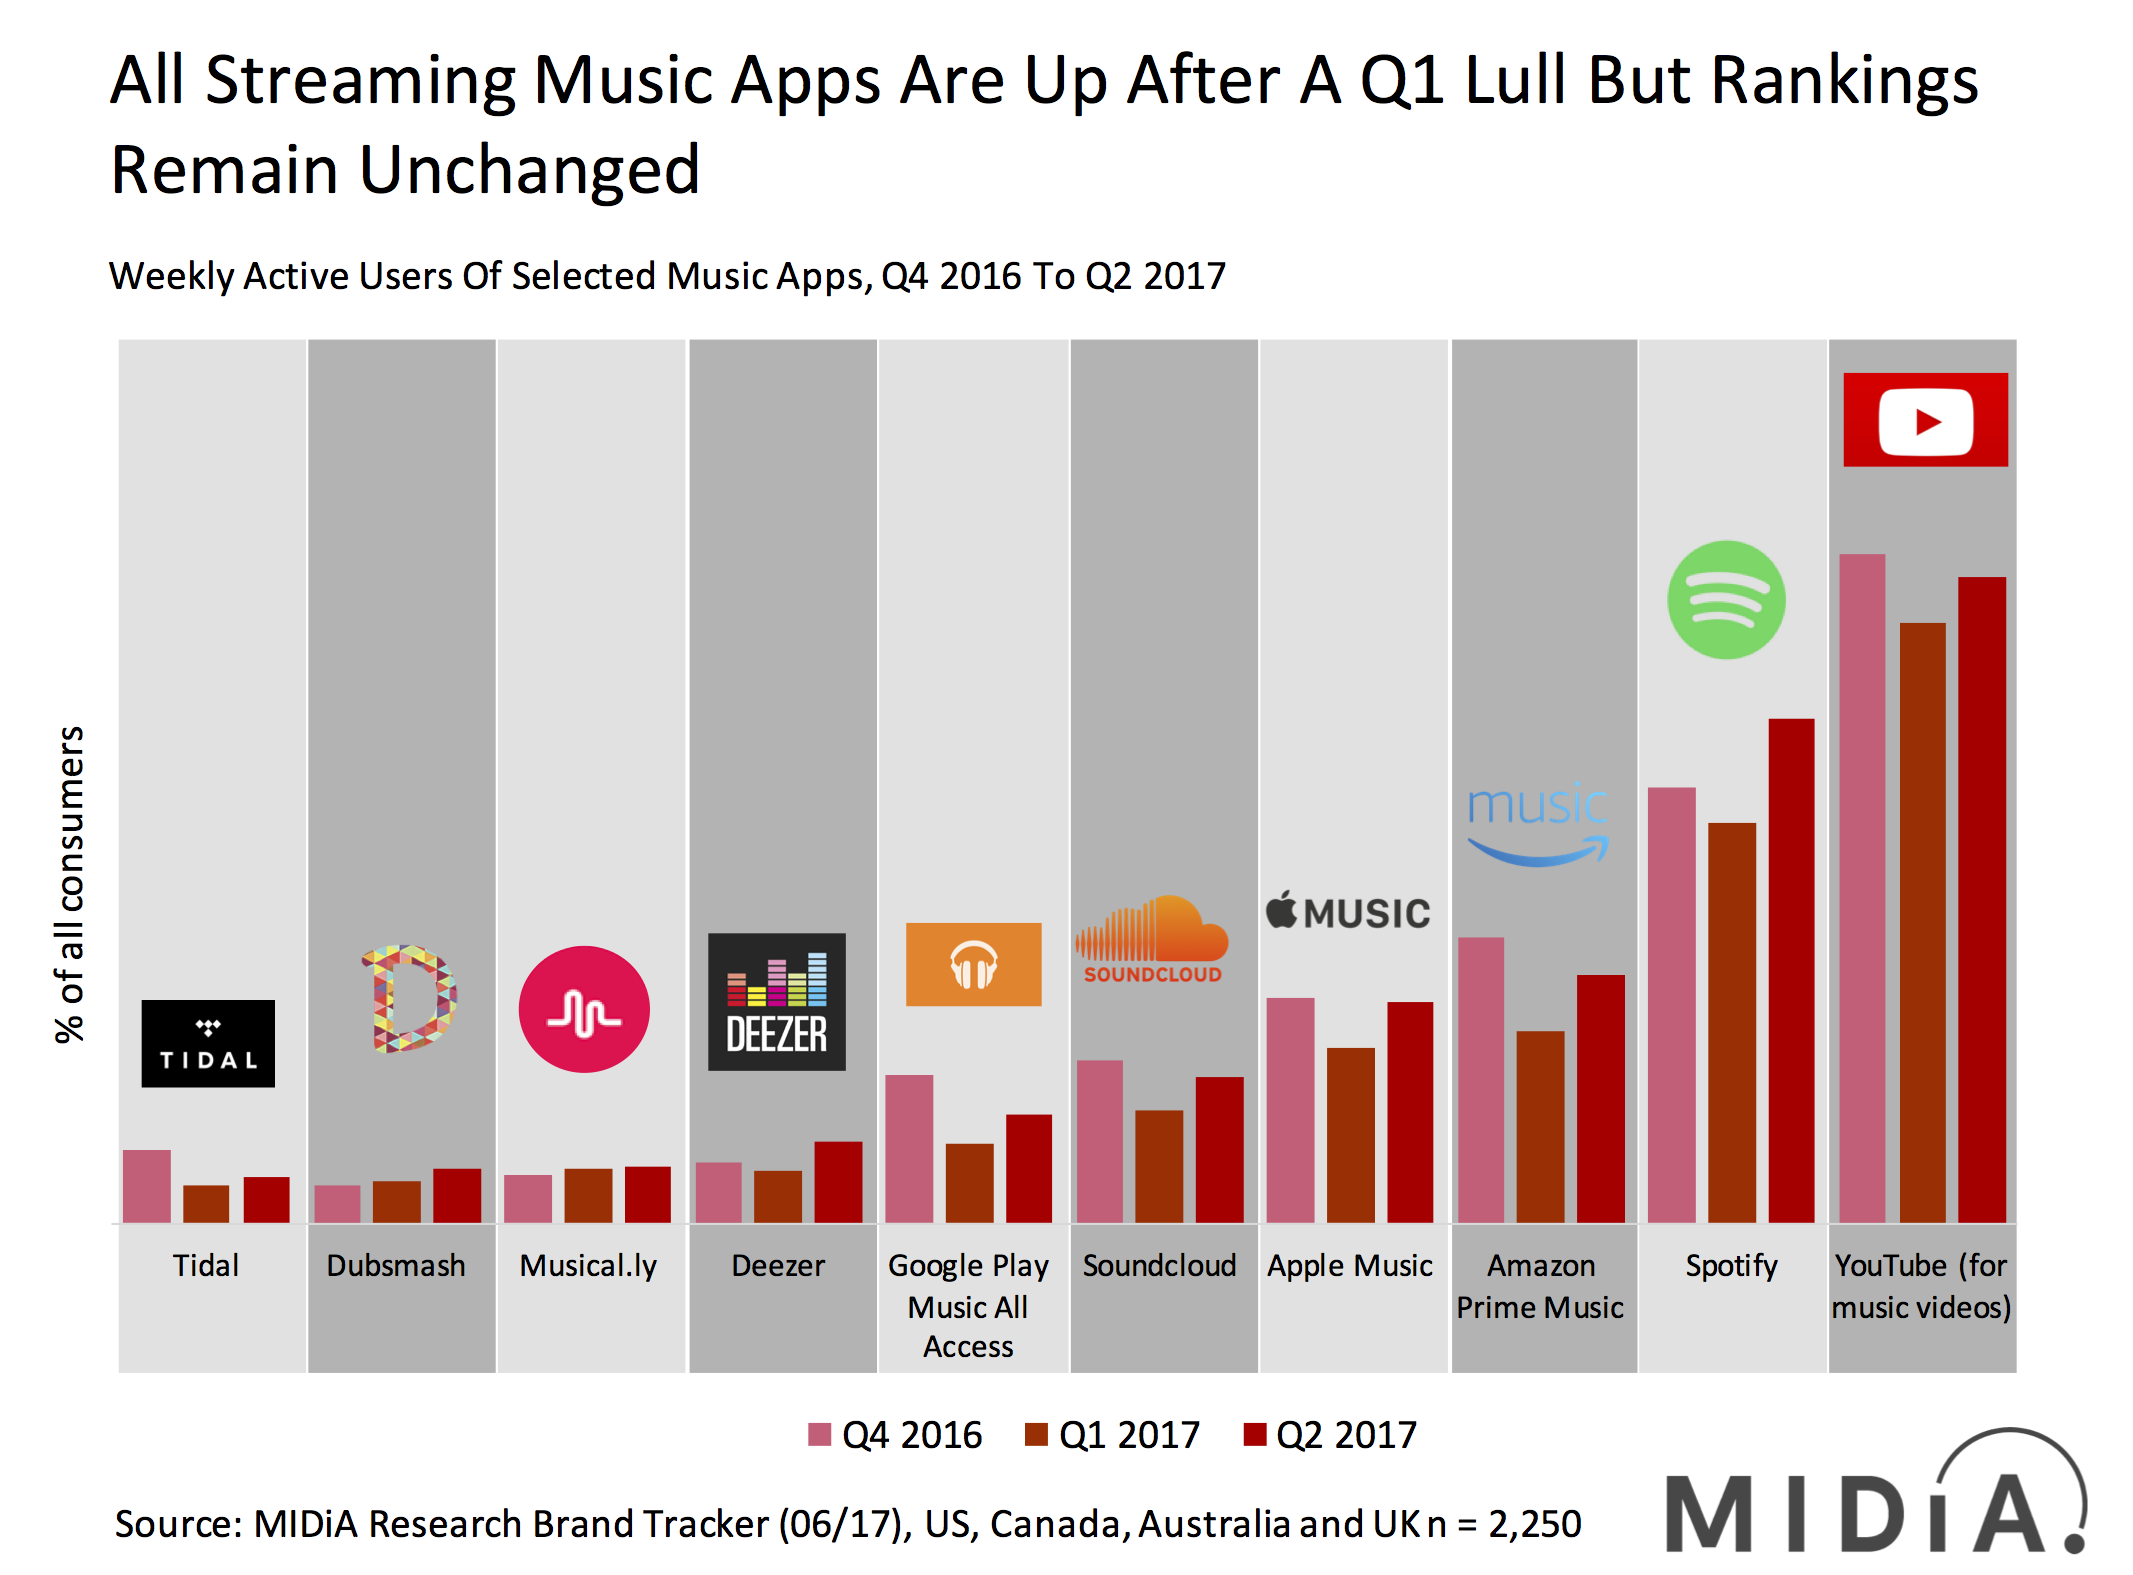 Cover image for Spotify, Netflix And Instagram Make Gains In Q2 2017